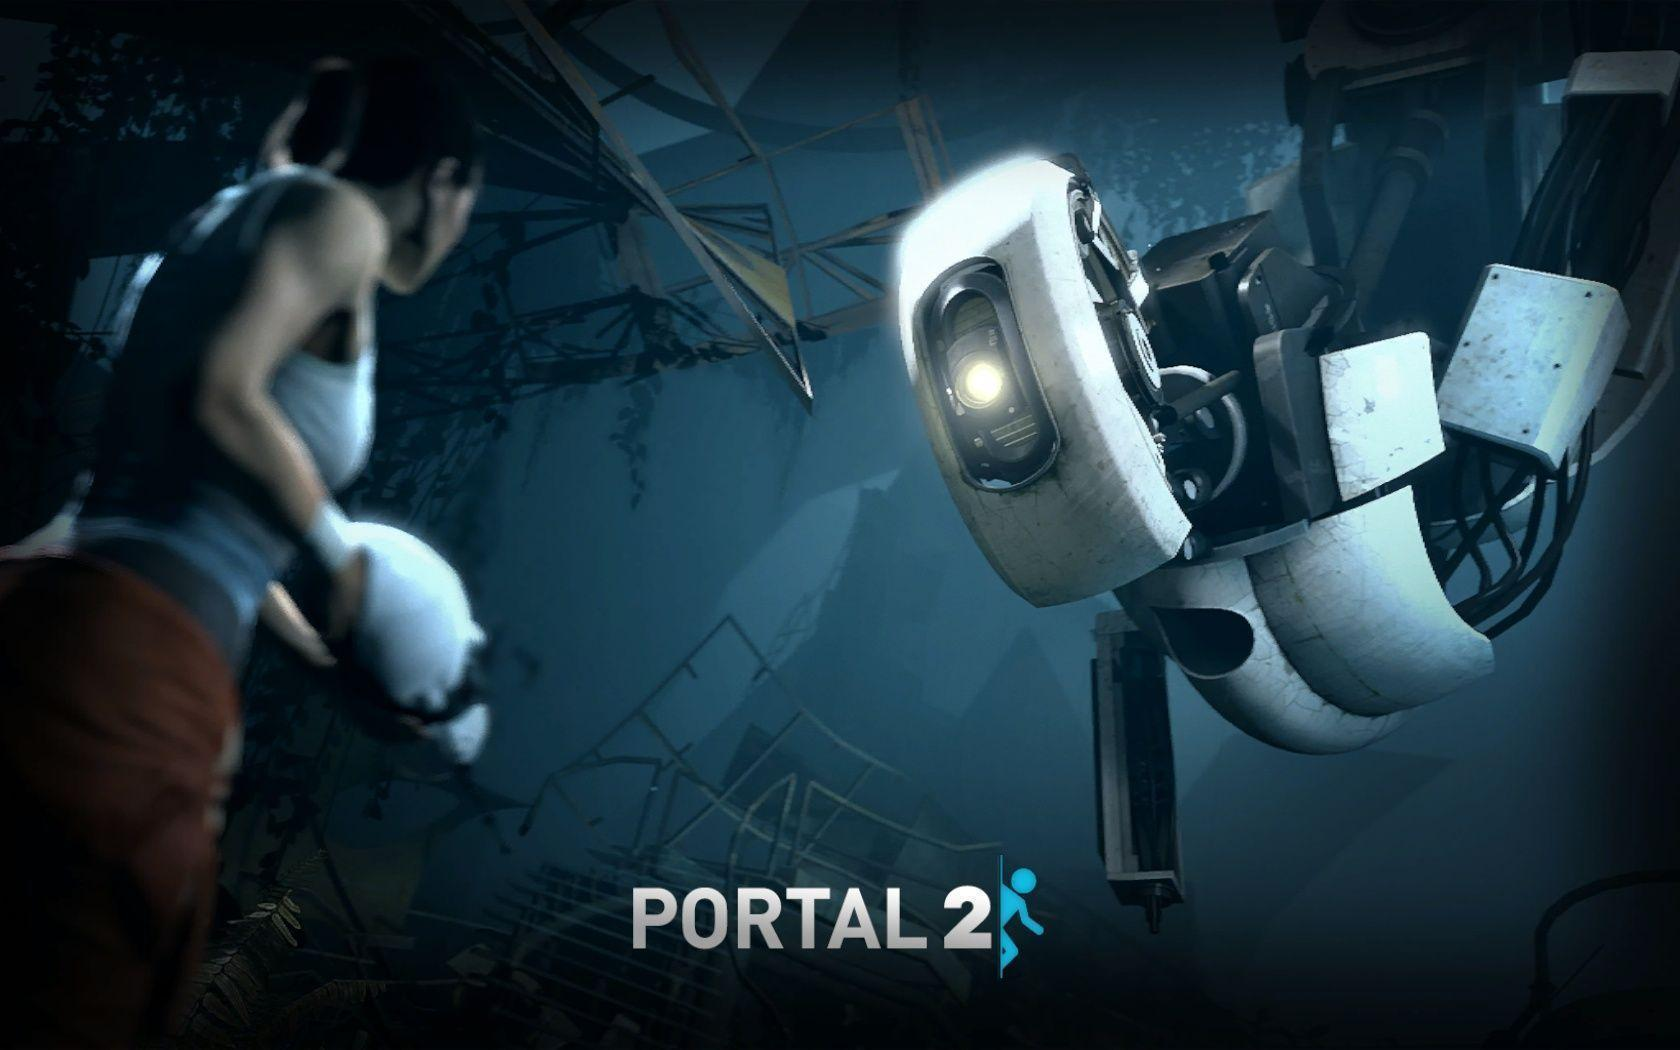 Portal 2 Wallpapers image